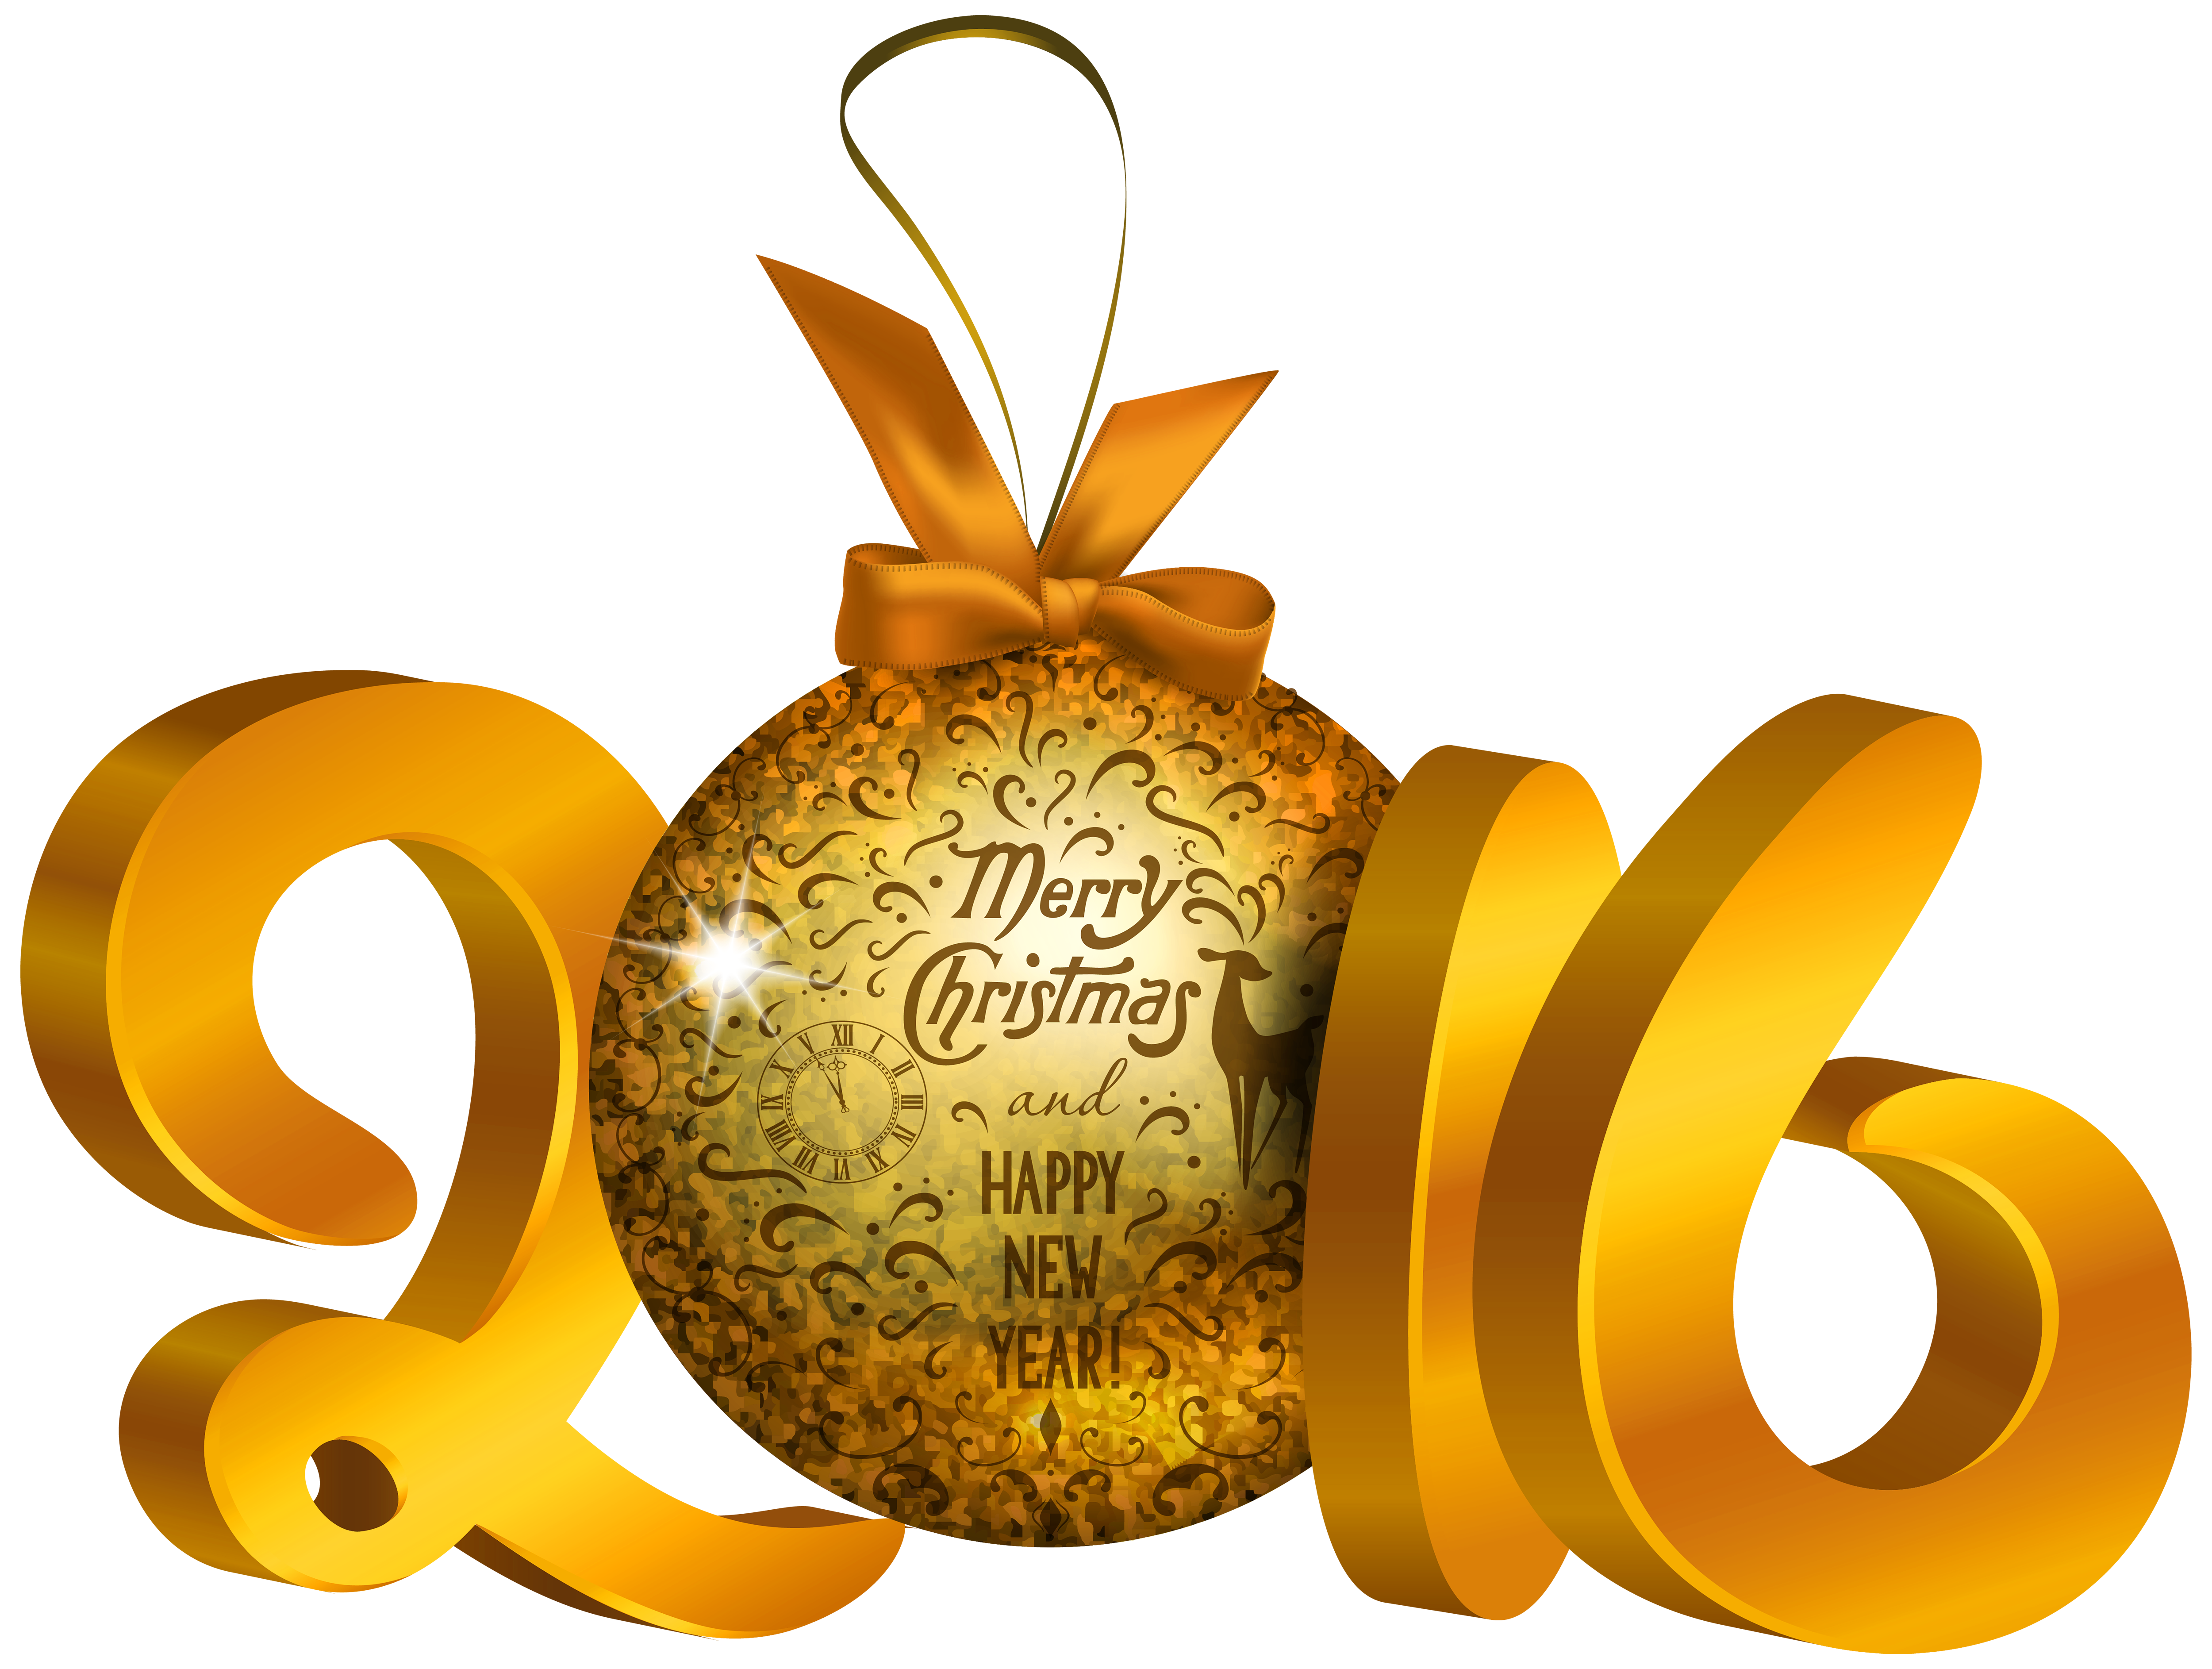 Yellow decoration png image. 2016 clipart new year